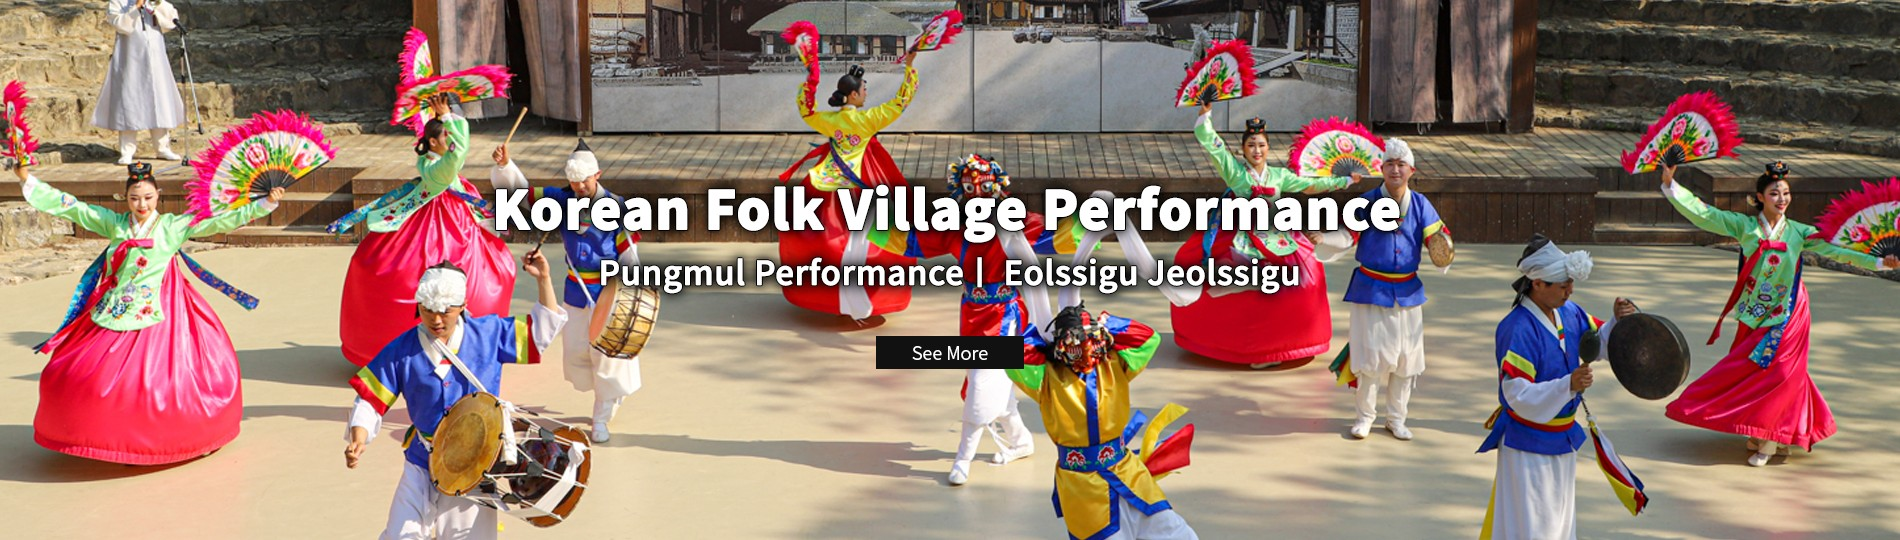 Korean Folk Village Performance